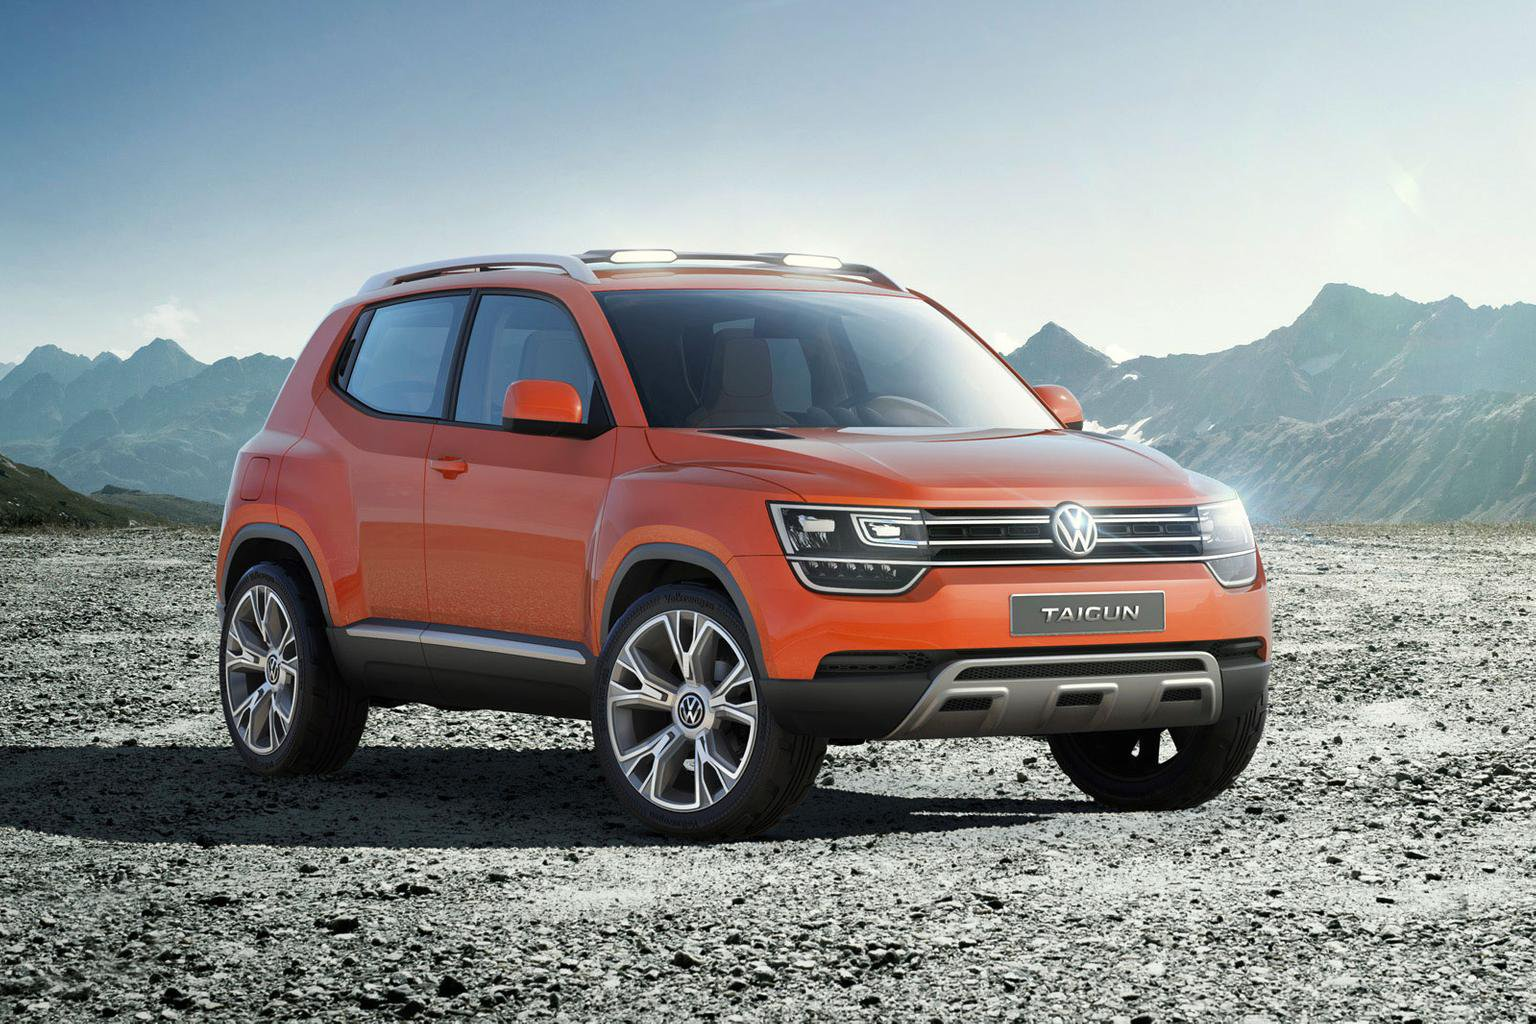 New VW Taigun baby SUV revealed